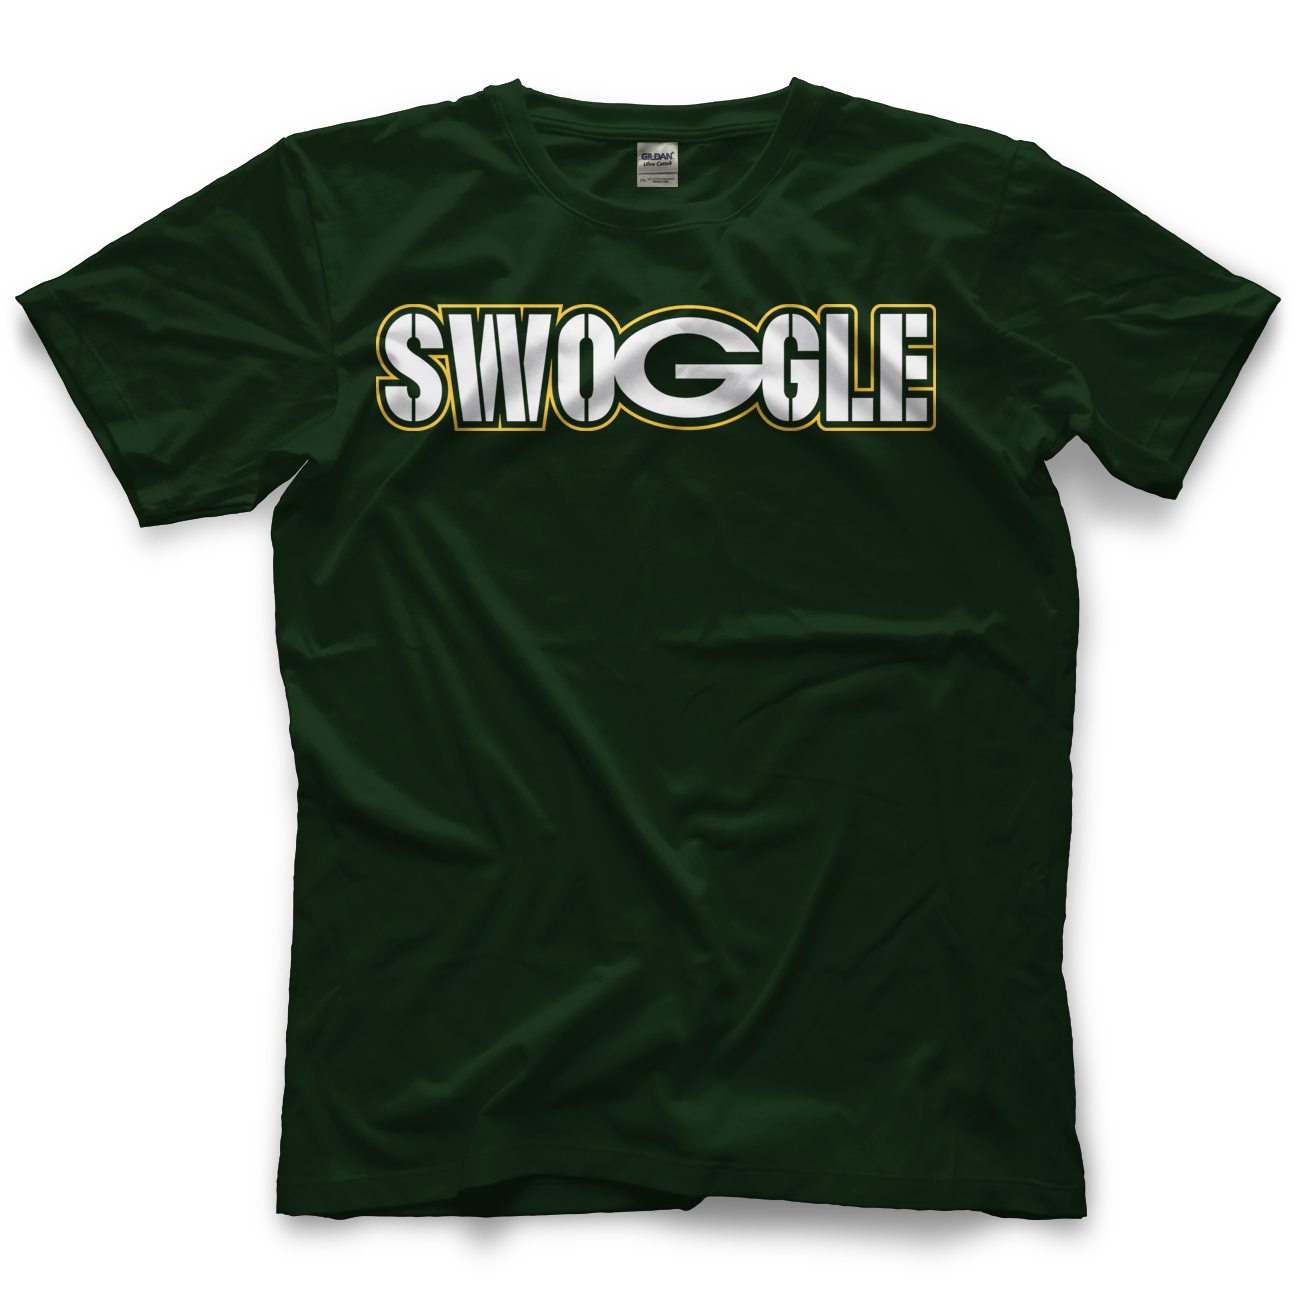 GB Swoggle T-shirt